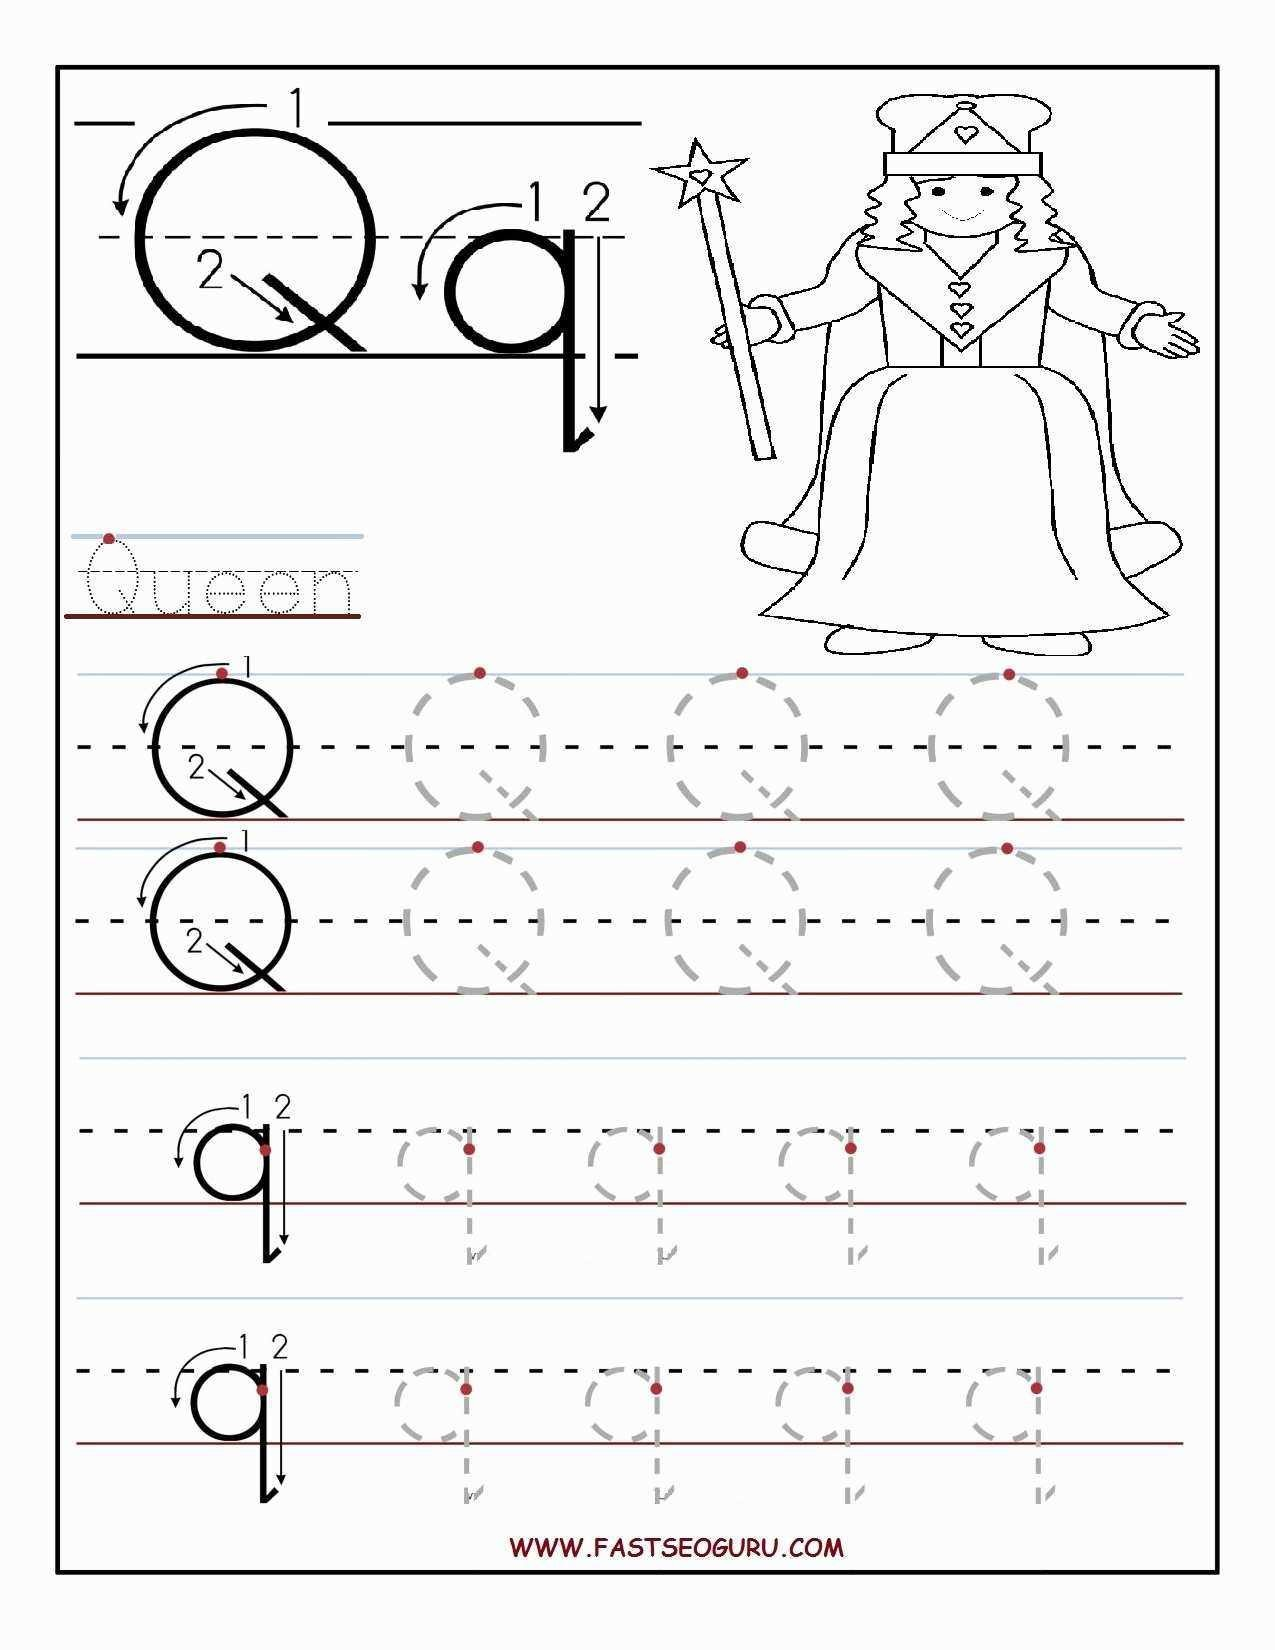 Alphabet Tracing Worksheets For 3 Year Olds – Letter Worksheets [ 1650 x 1275 Pixel ]